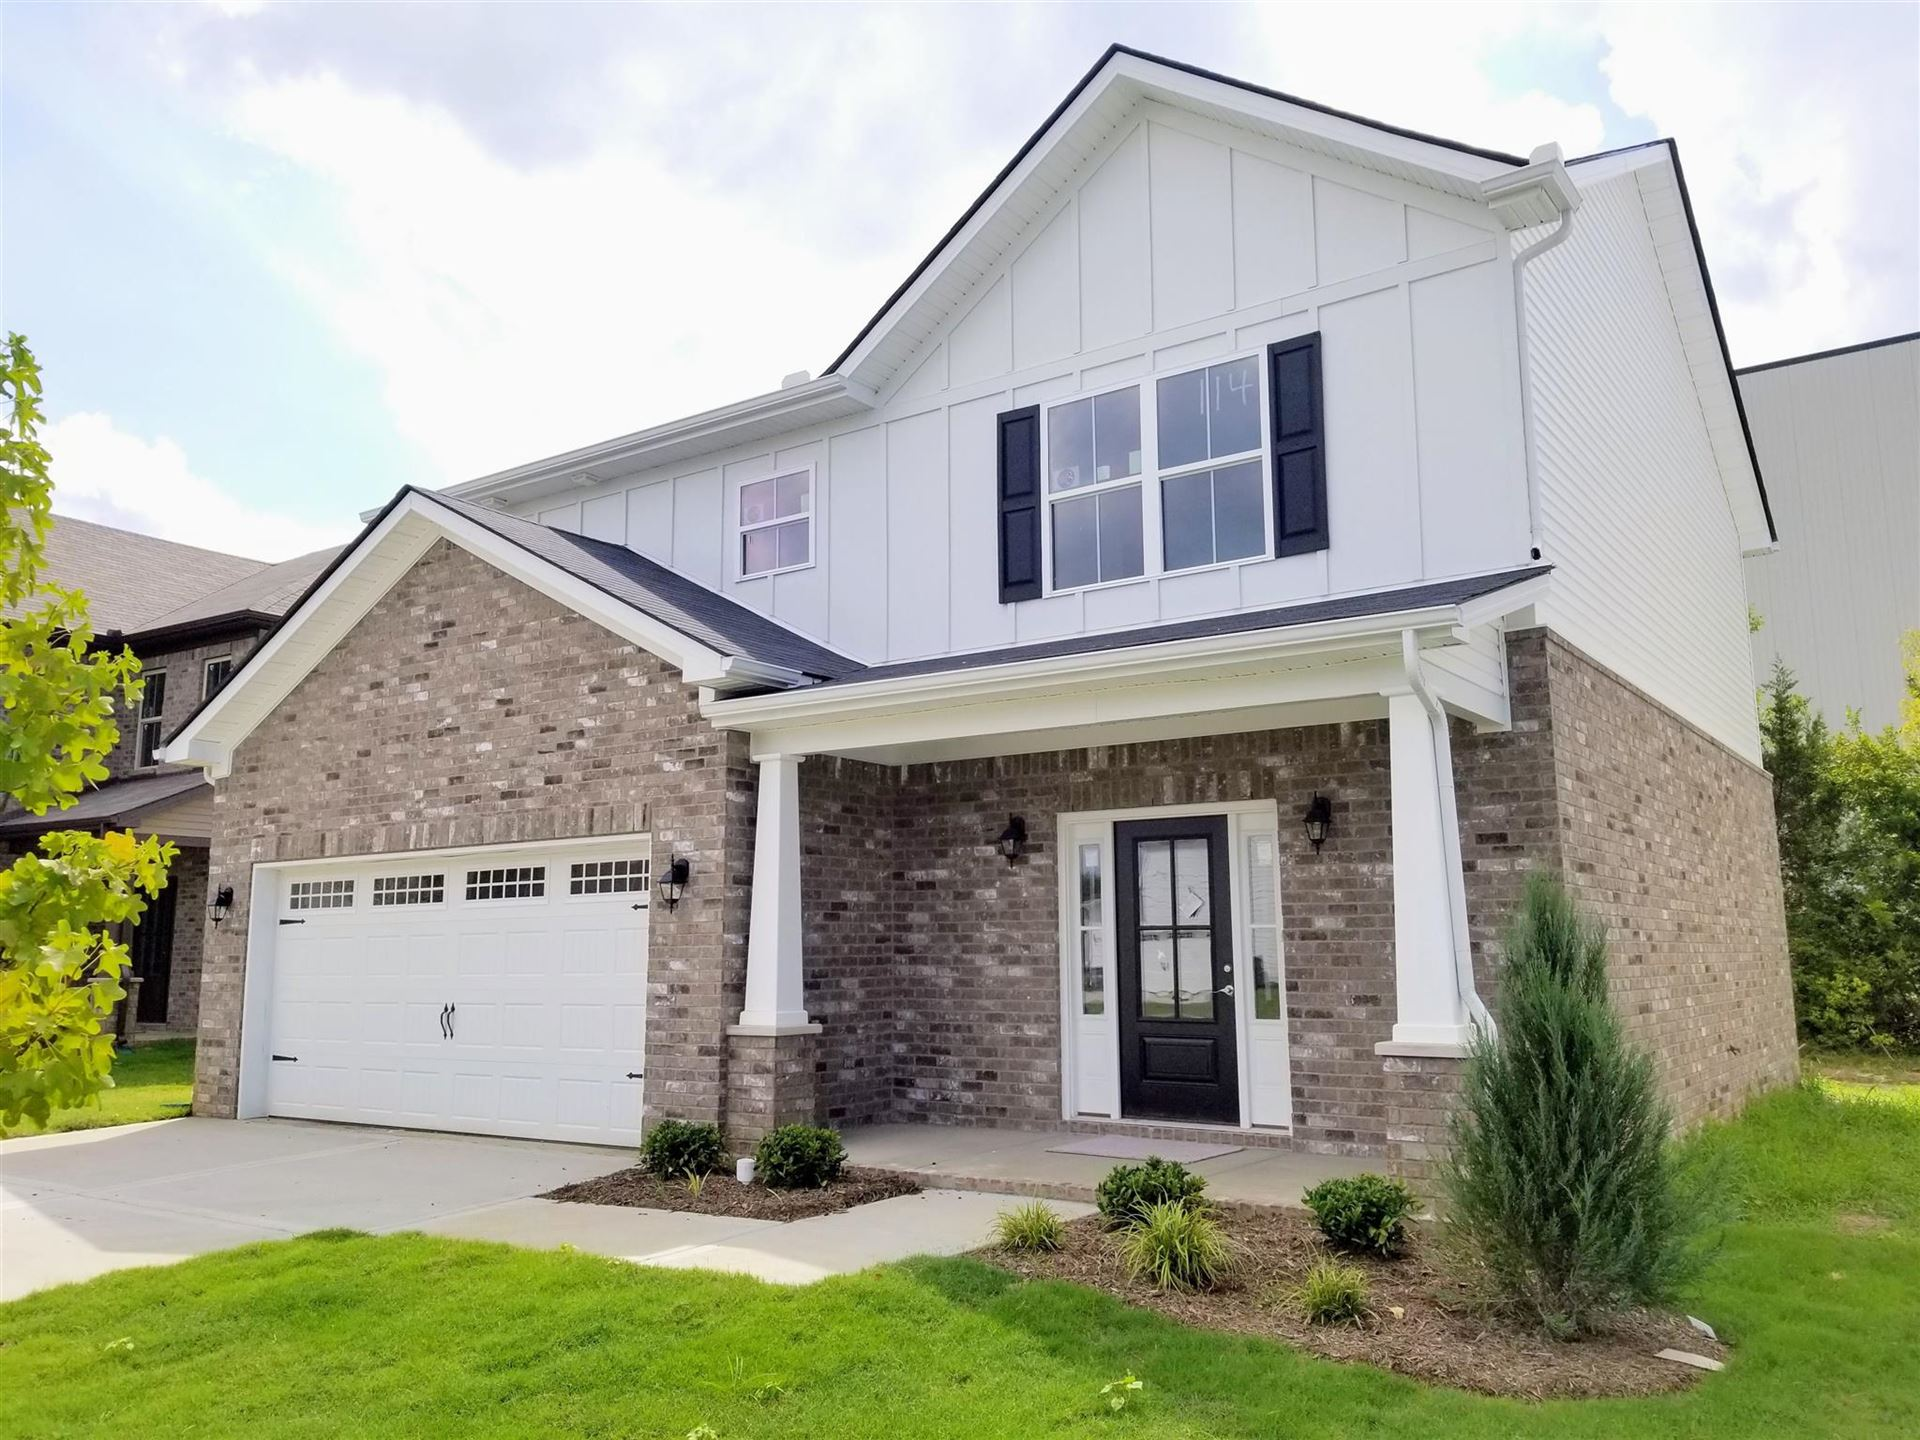 Property Image Of 1607 Sunray Dr - Lot 114 In Murfreesboro, Tn